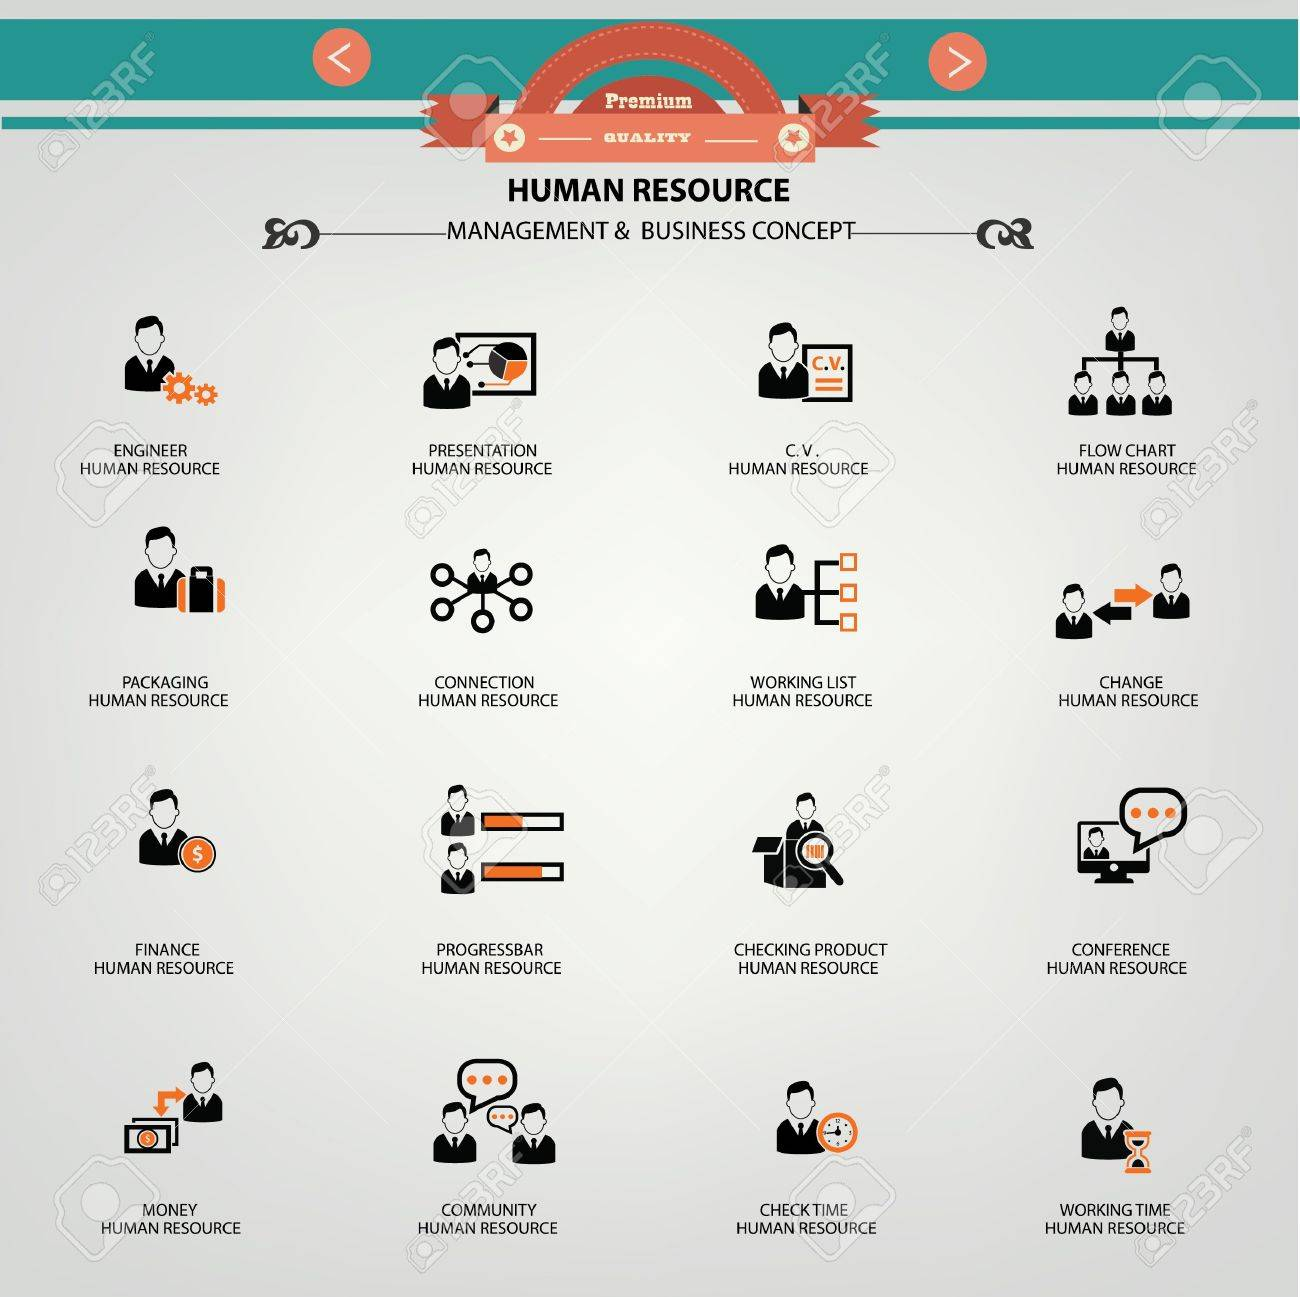 Human resource, Management   Business concept icons Stock Vector - 20391686